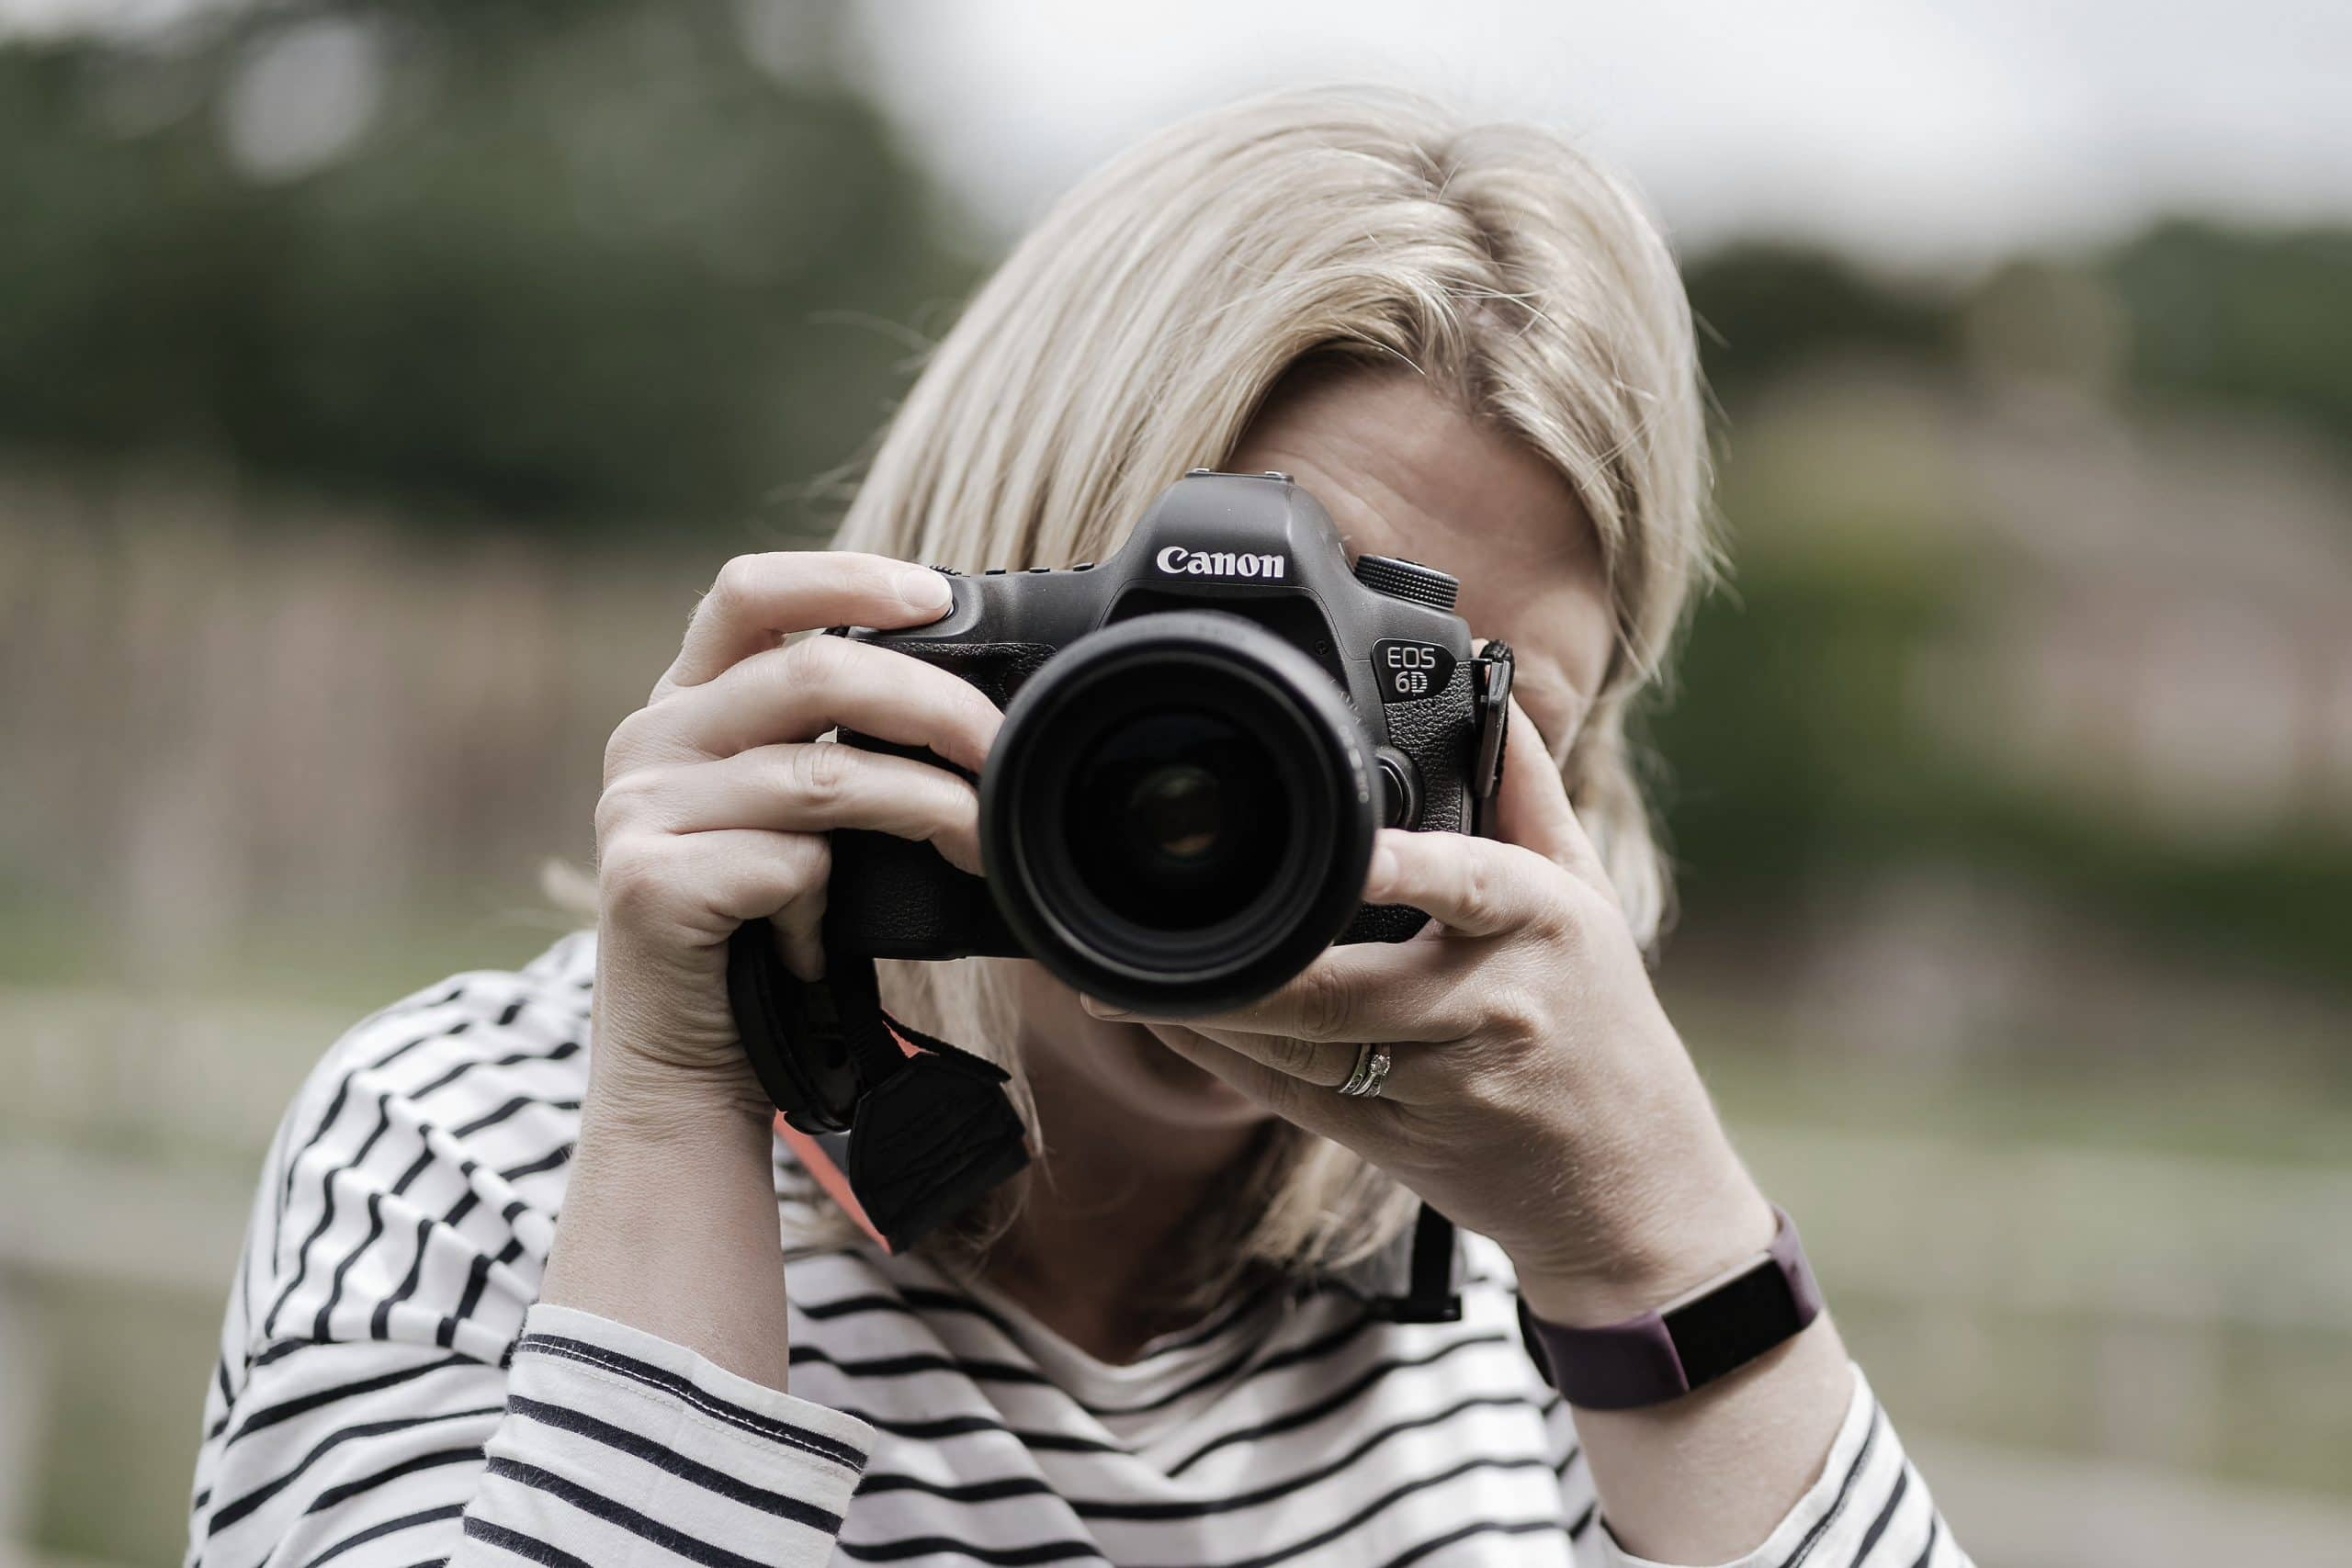 Hannah Brooke Blog Photographer What I learned in 2019